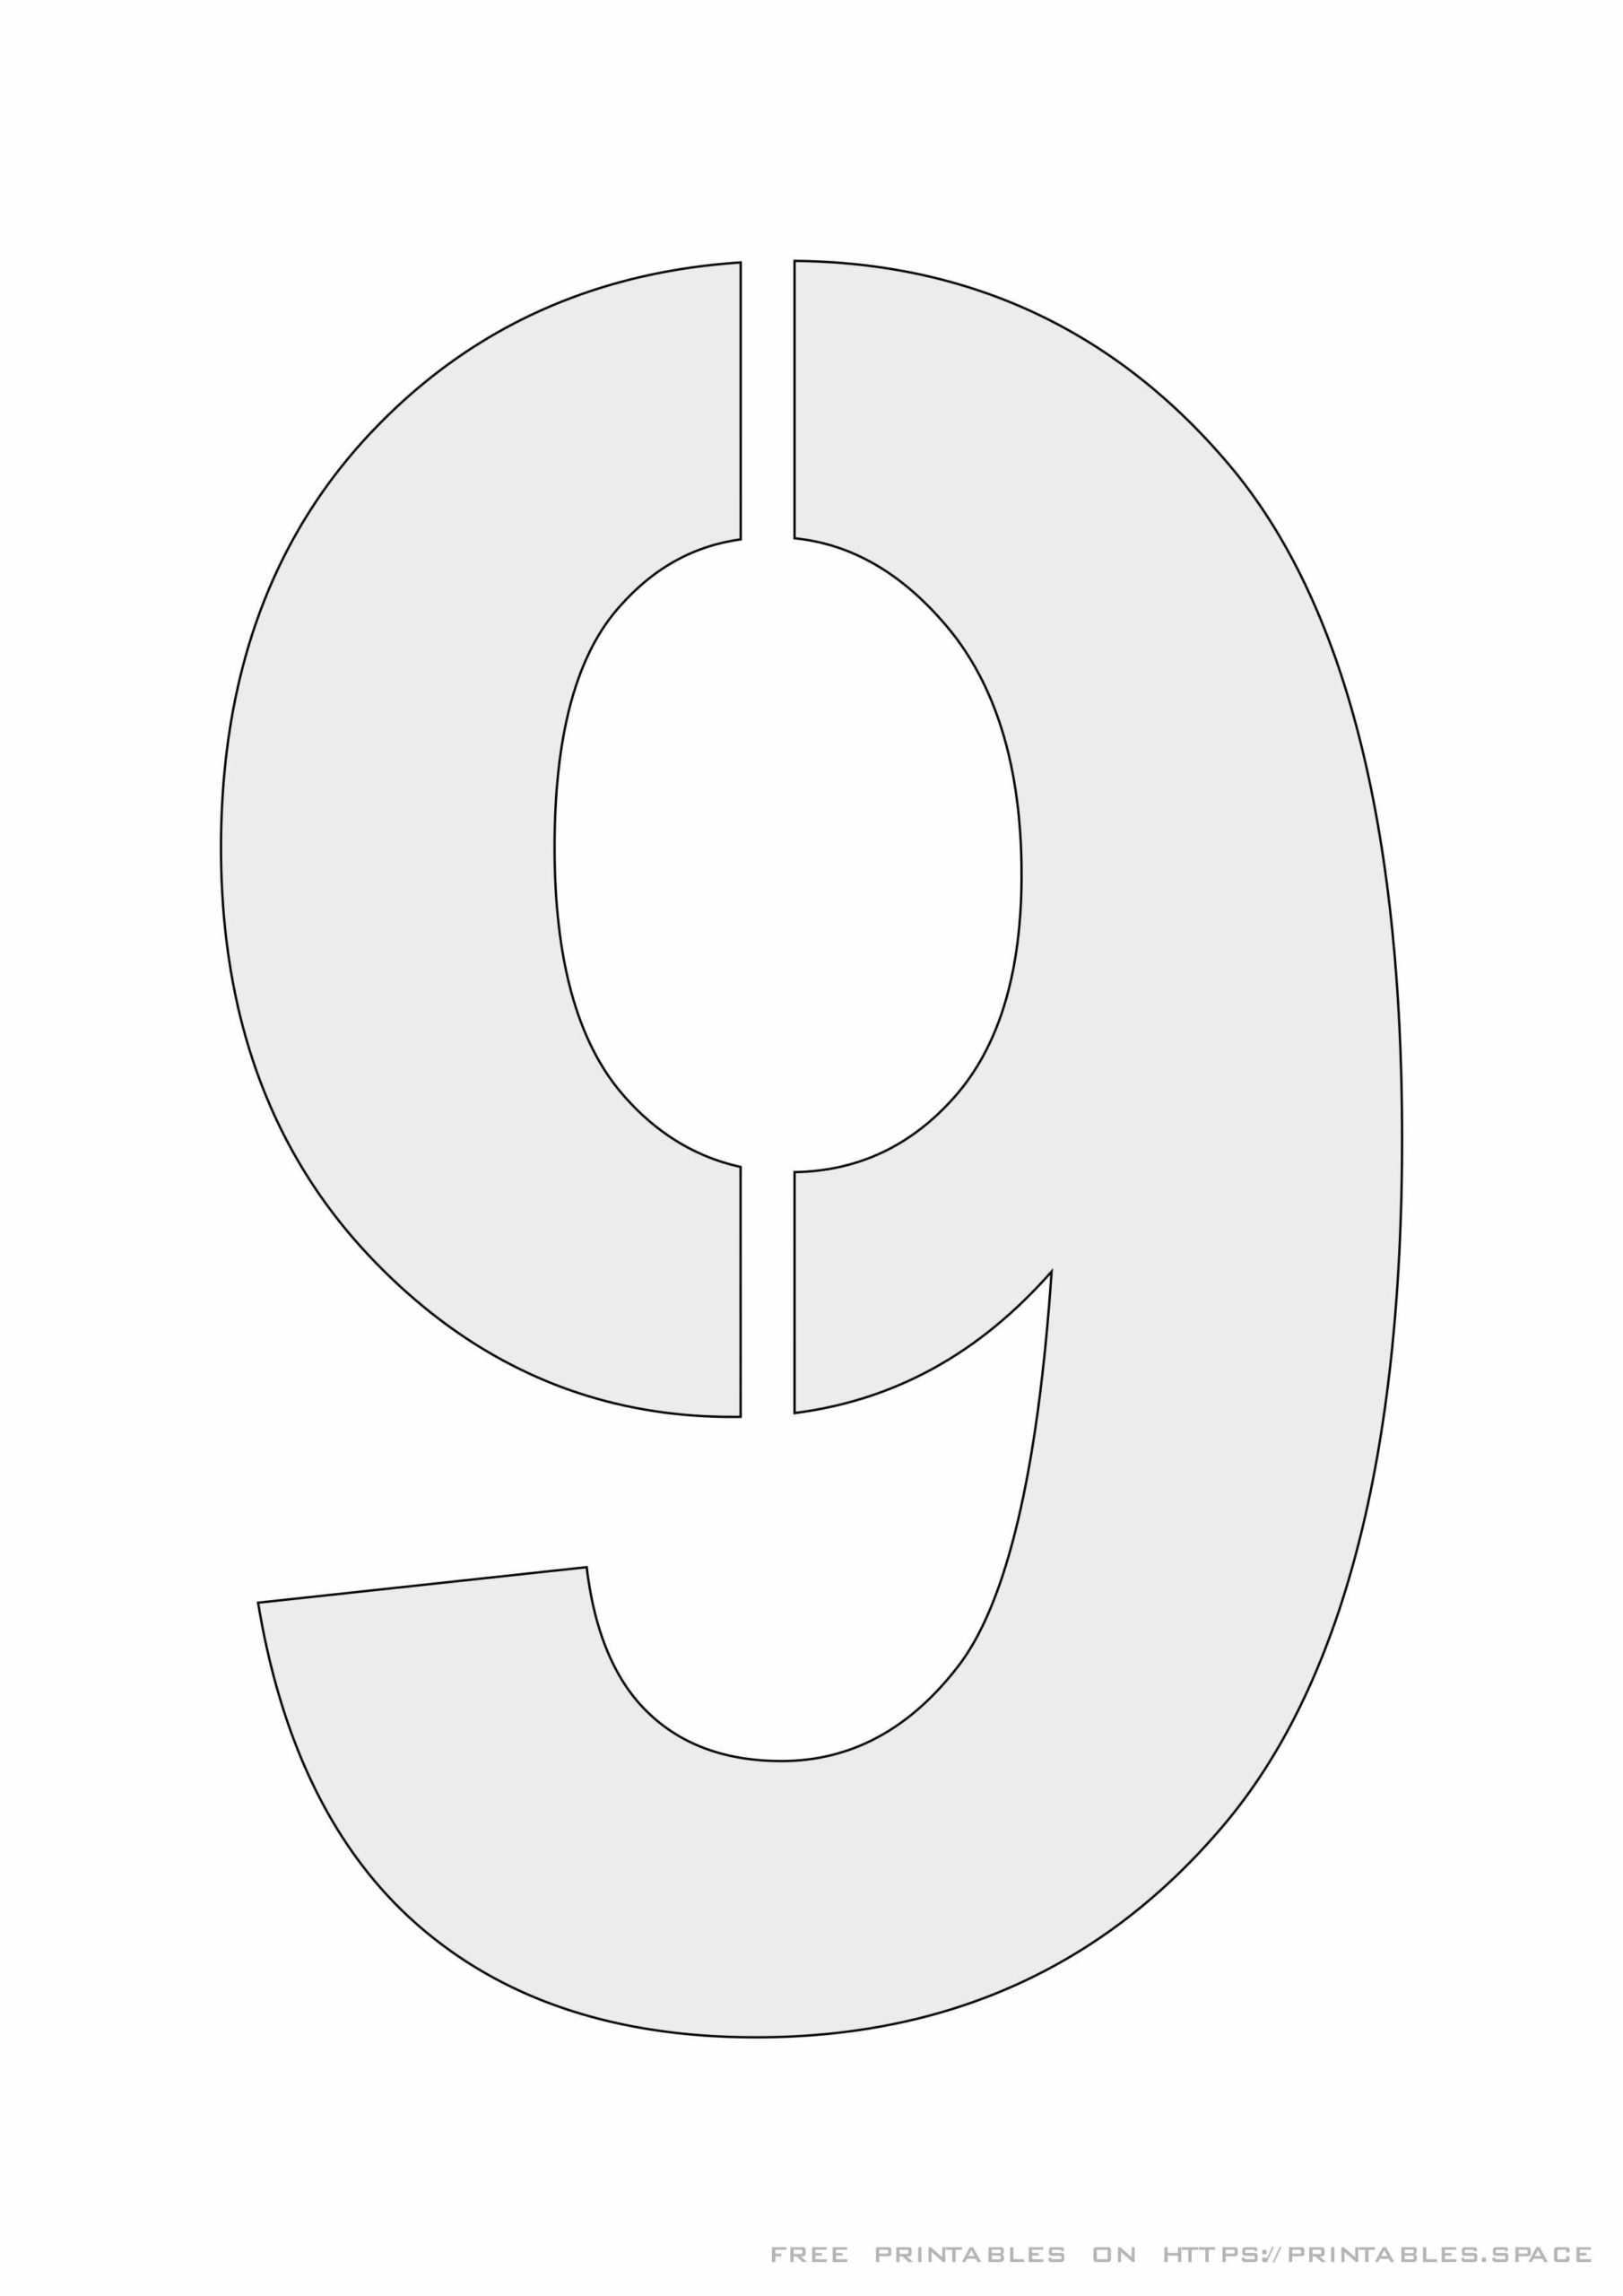 Stencil Number 9 Printable A4 Size Template Free